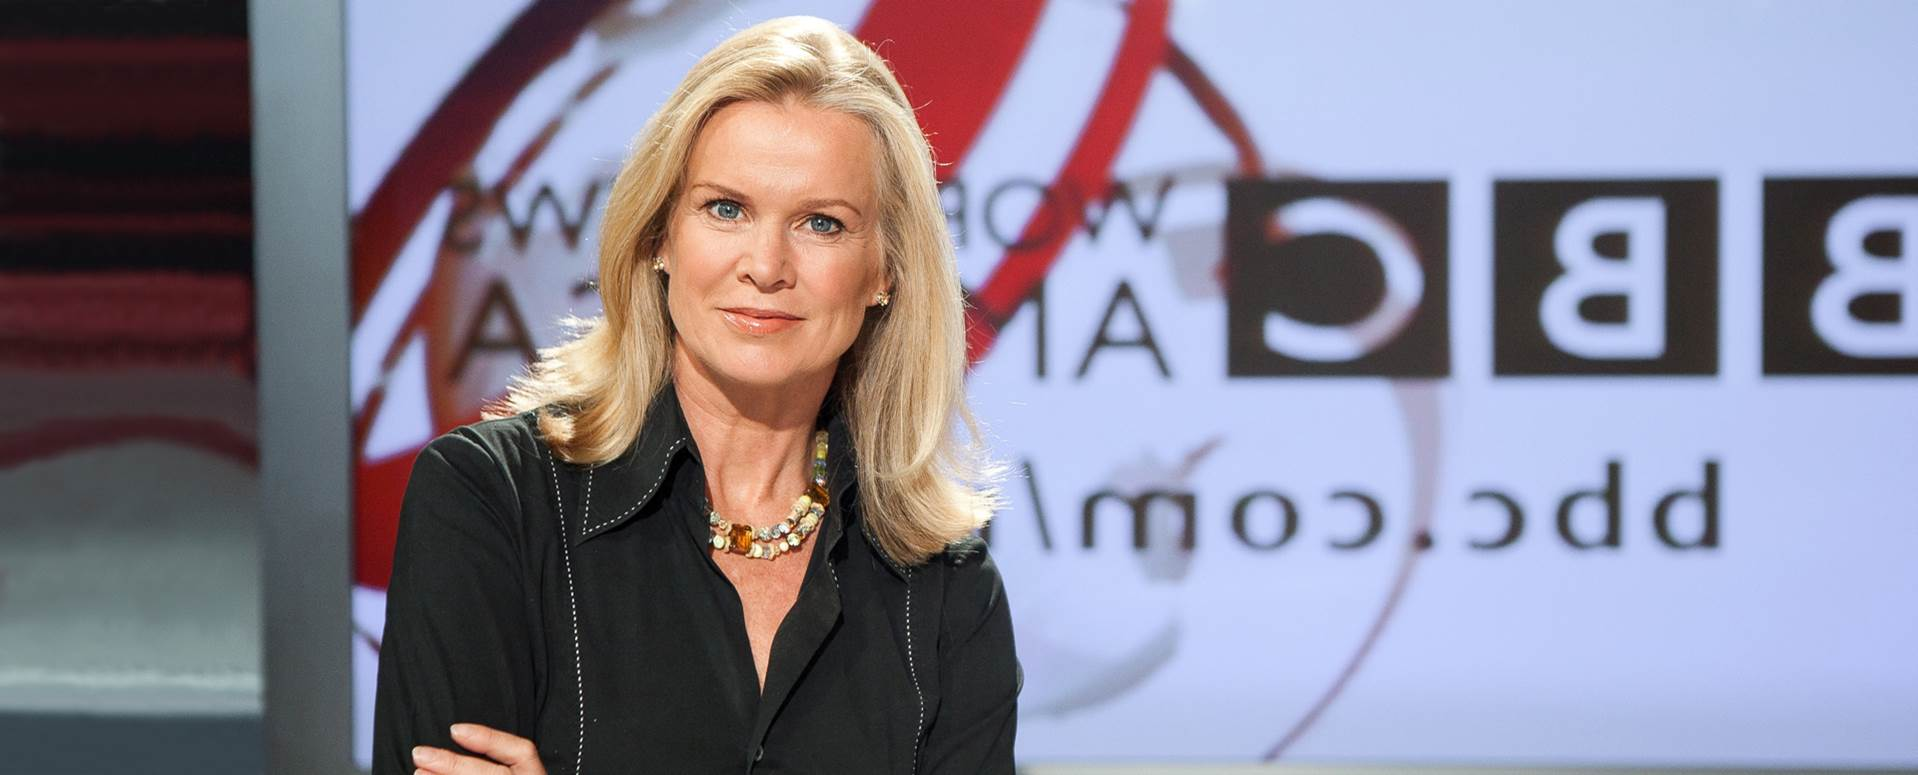 Katty Kay Family